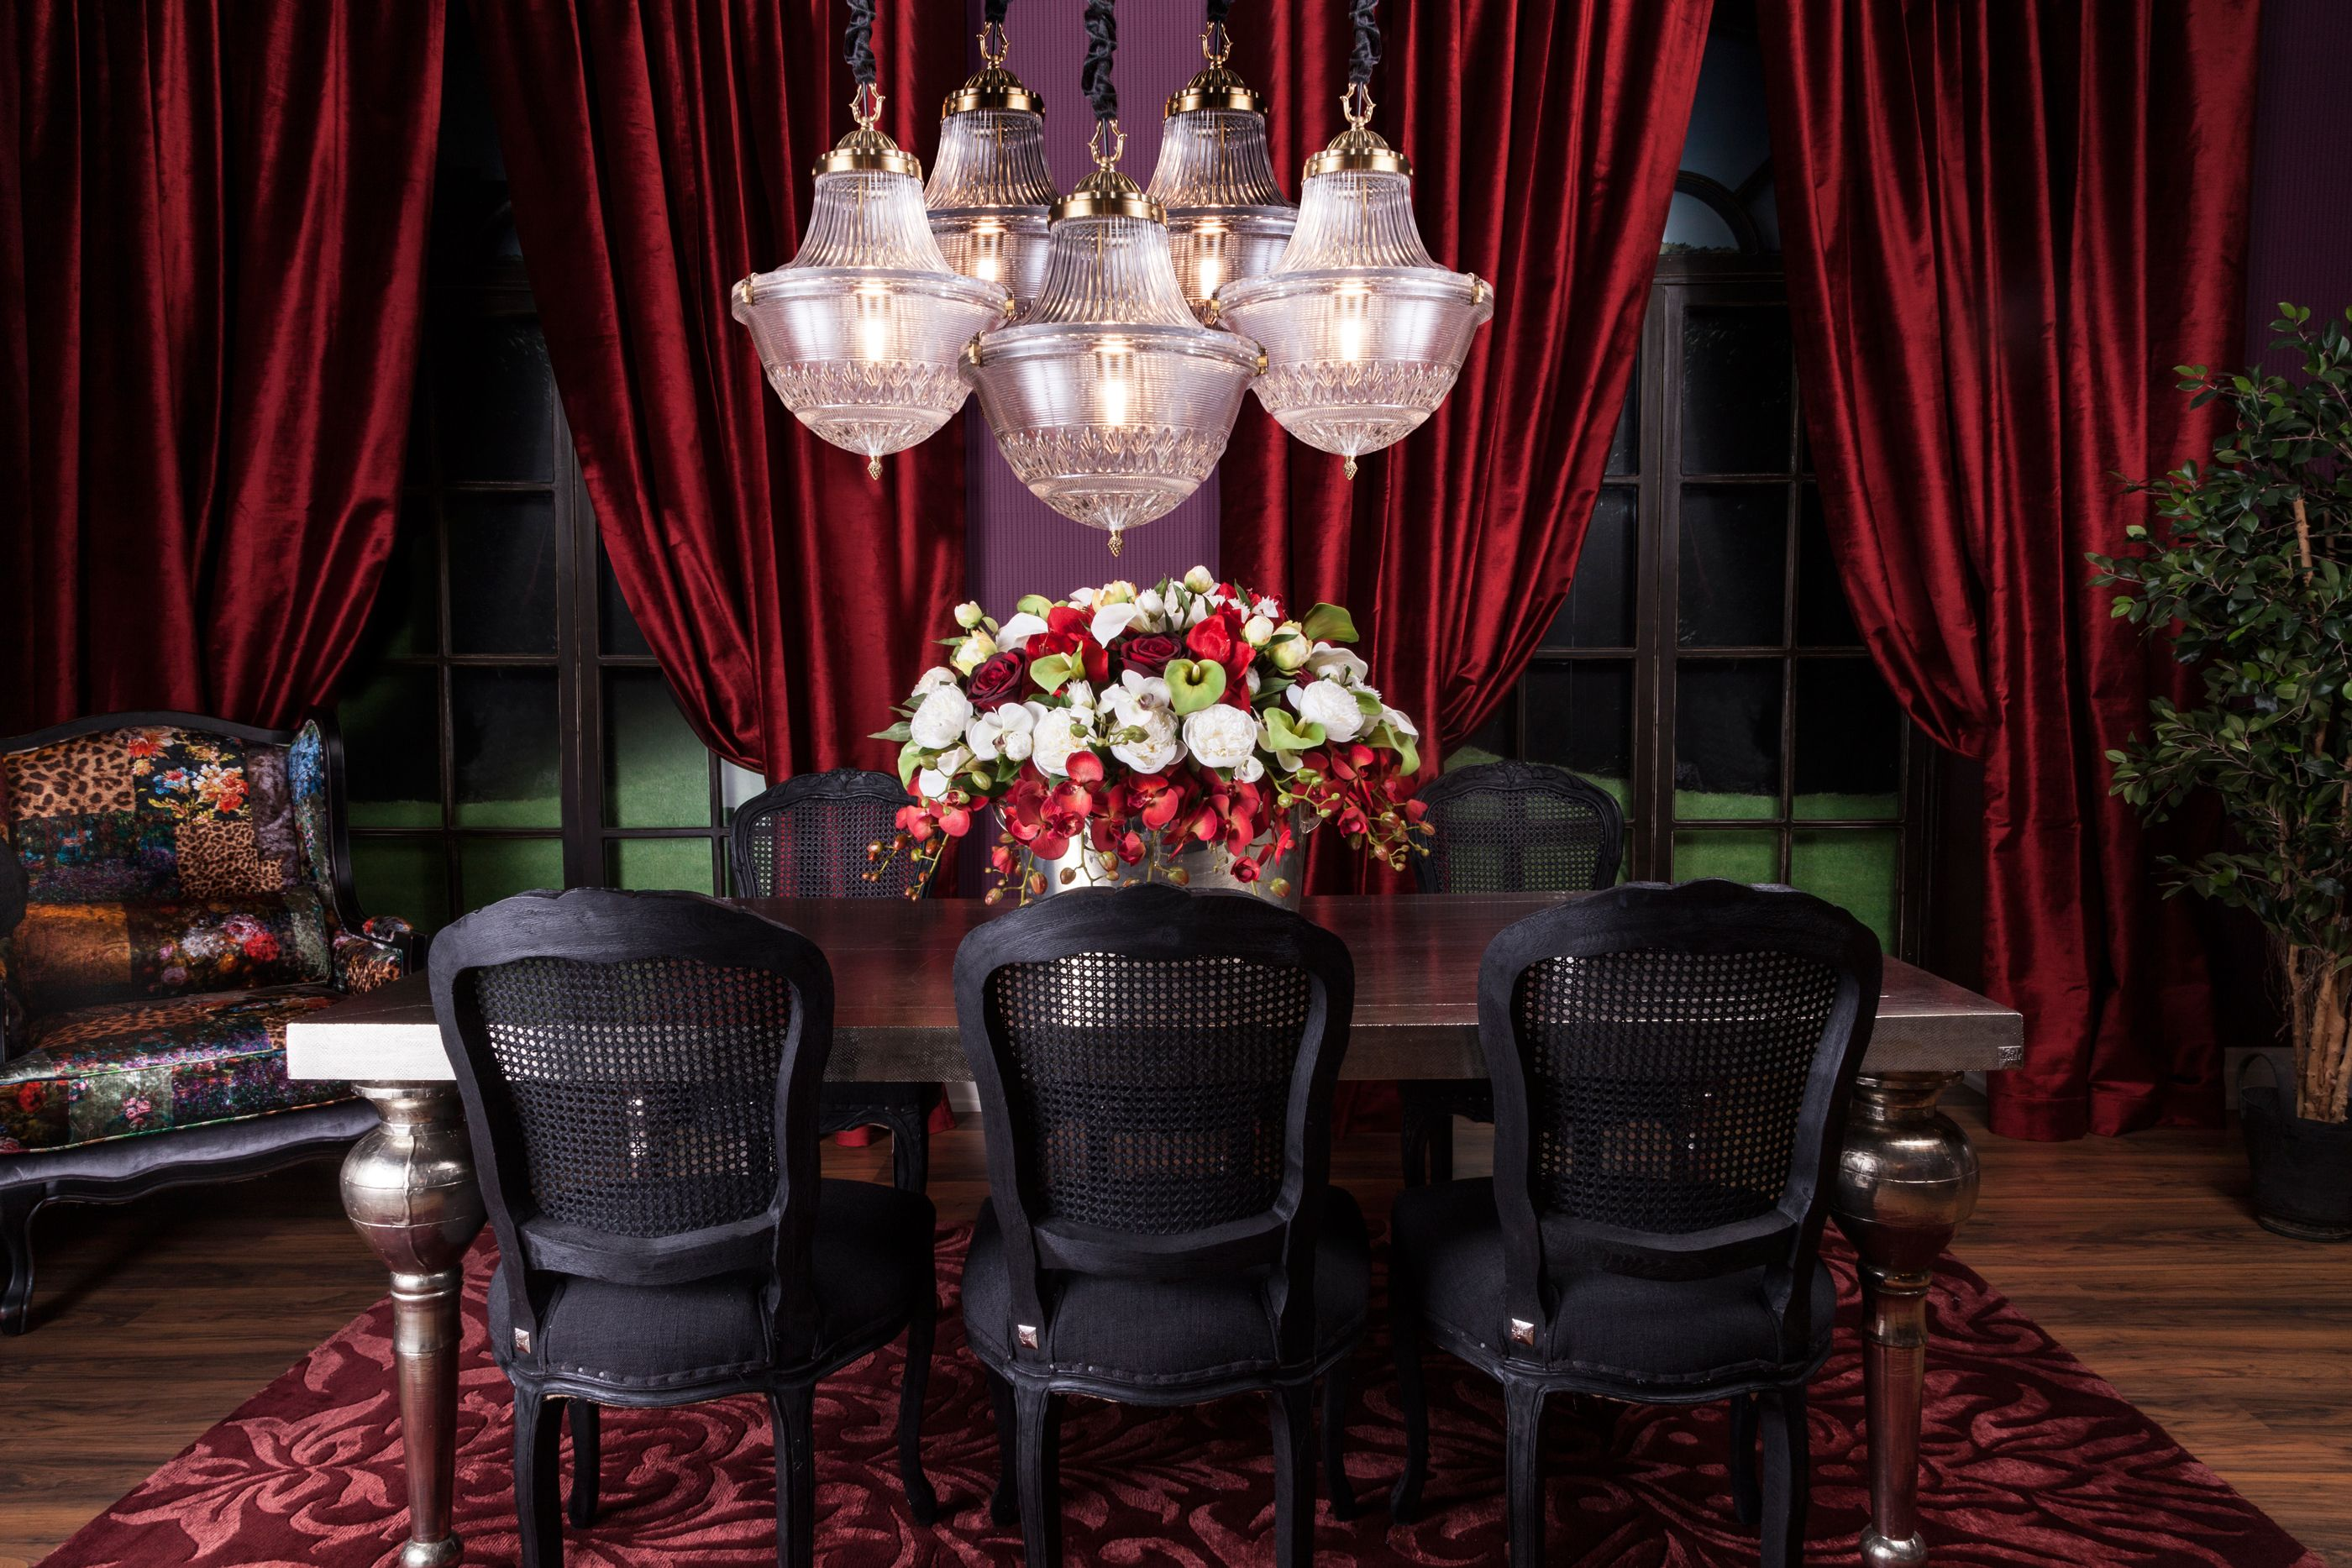 Dining | Burlesque: This Dramatic Interior Creates A Spectacle With The  Help Of Rich Furniture